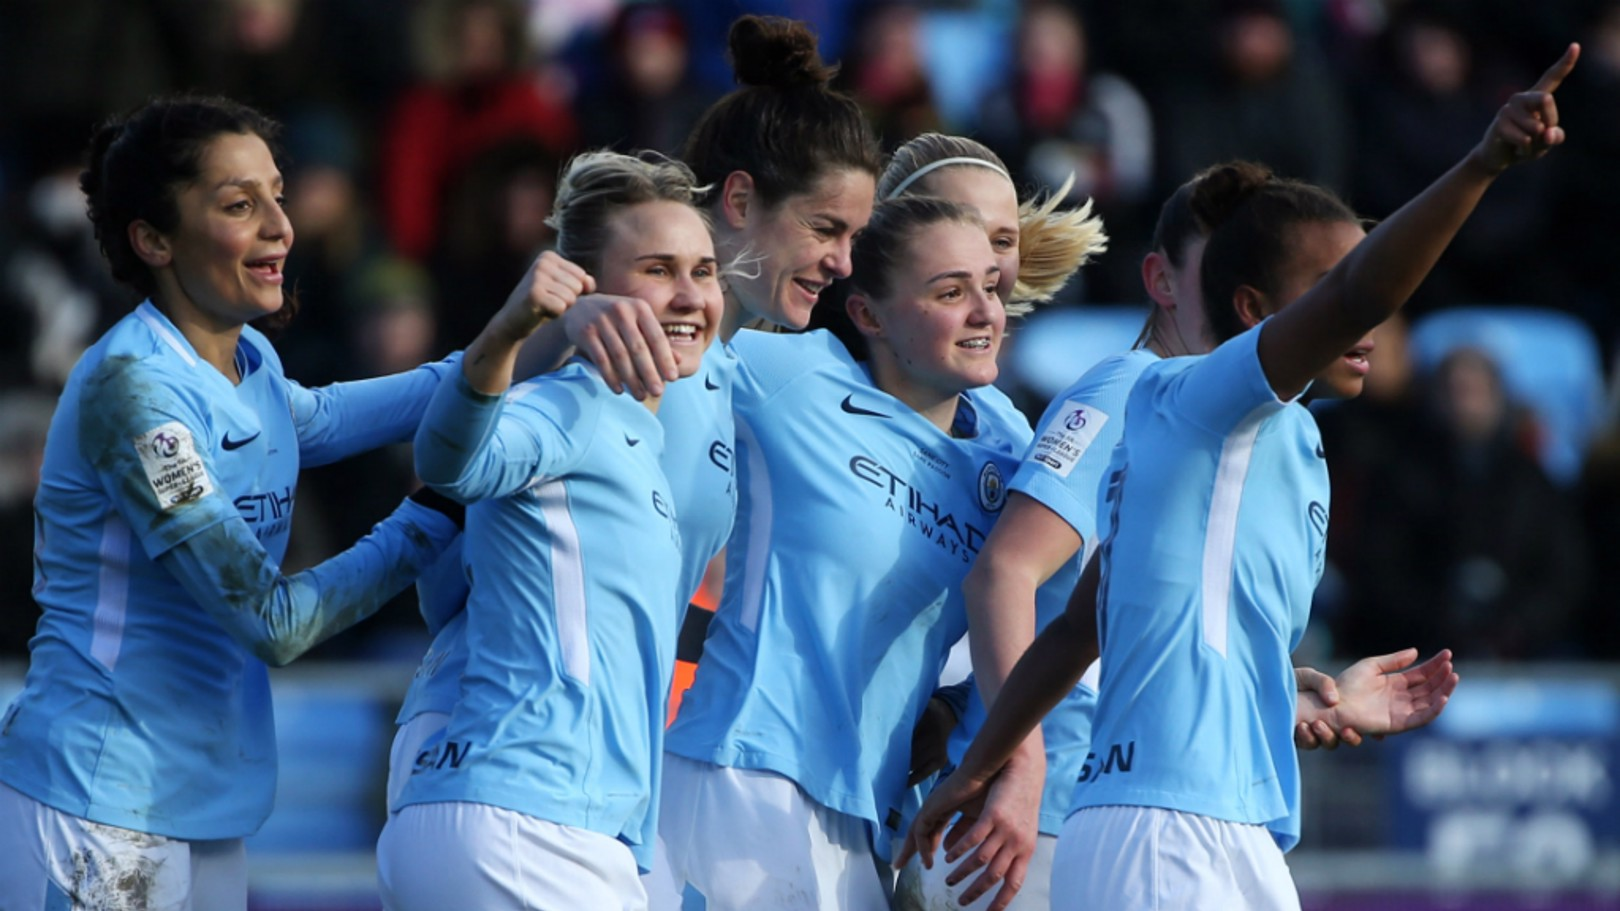 DELIGHT: Smiles all round as City celebrate